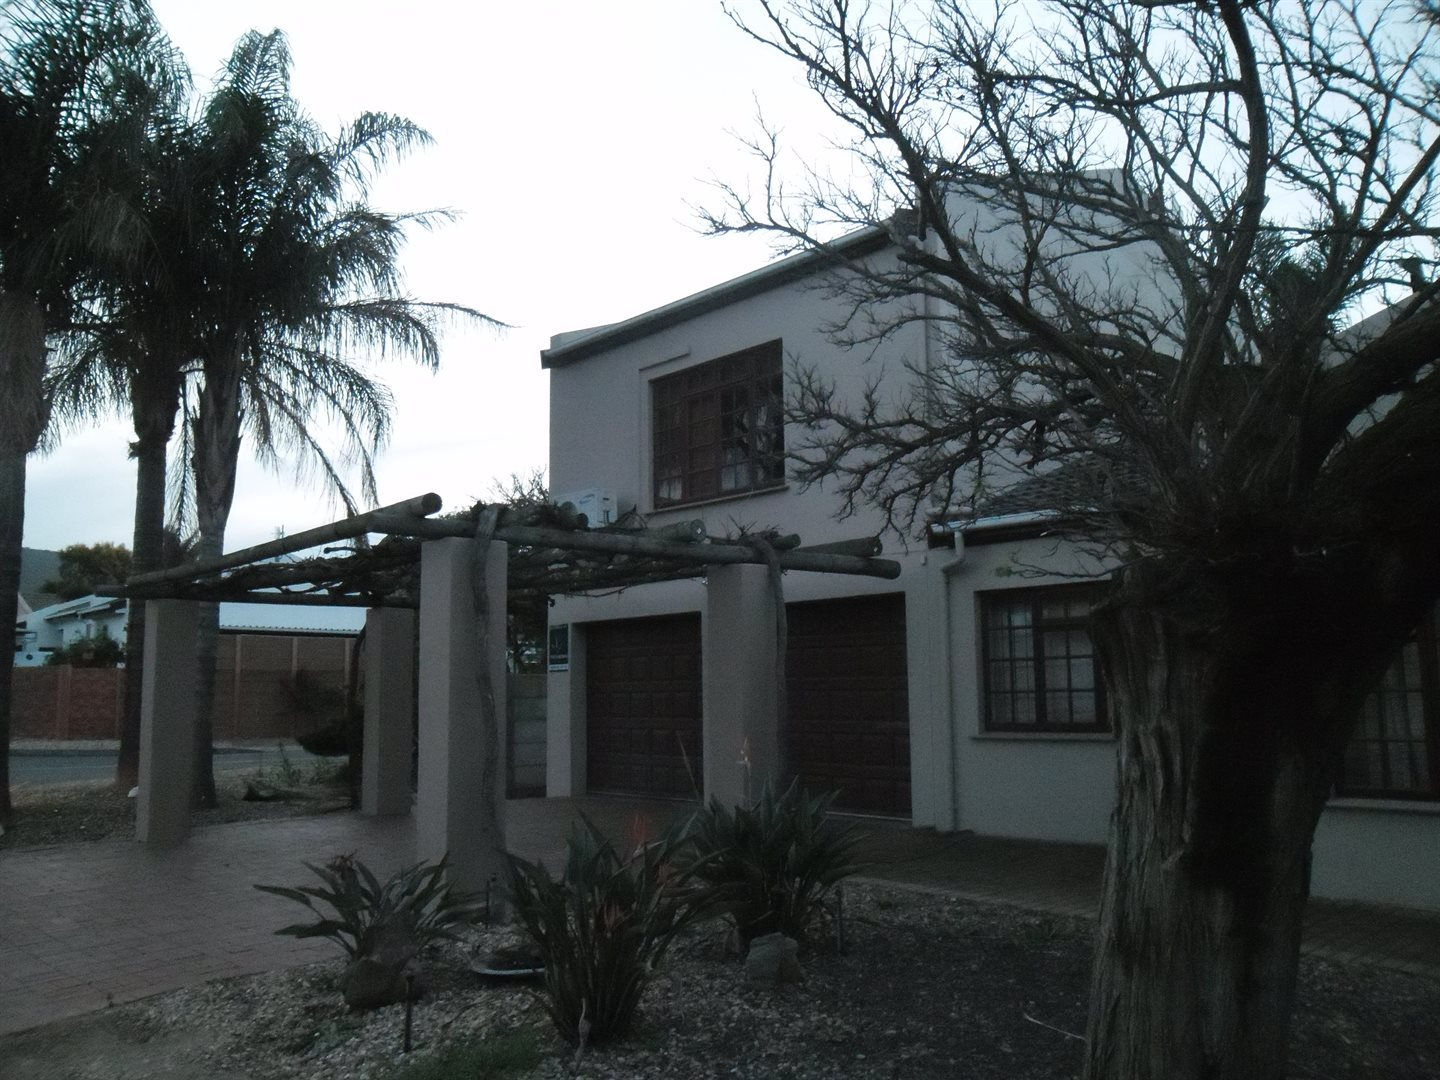 Paarl, Paarl North Property  | Houses For Sale Paarl North, Paarl North, House 4 bedrooms property for sale Price:2,200,000